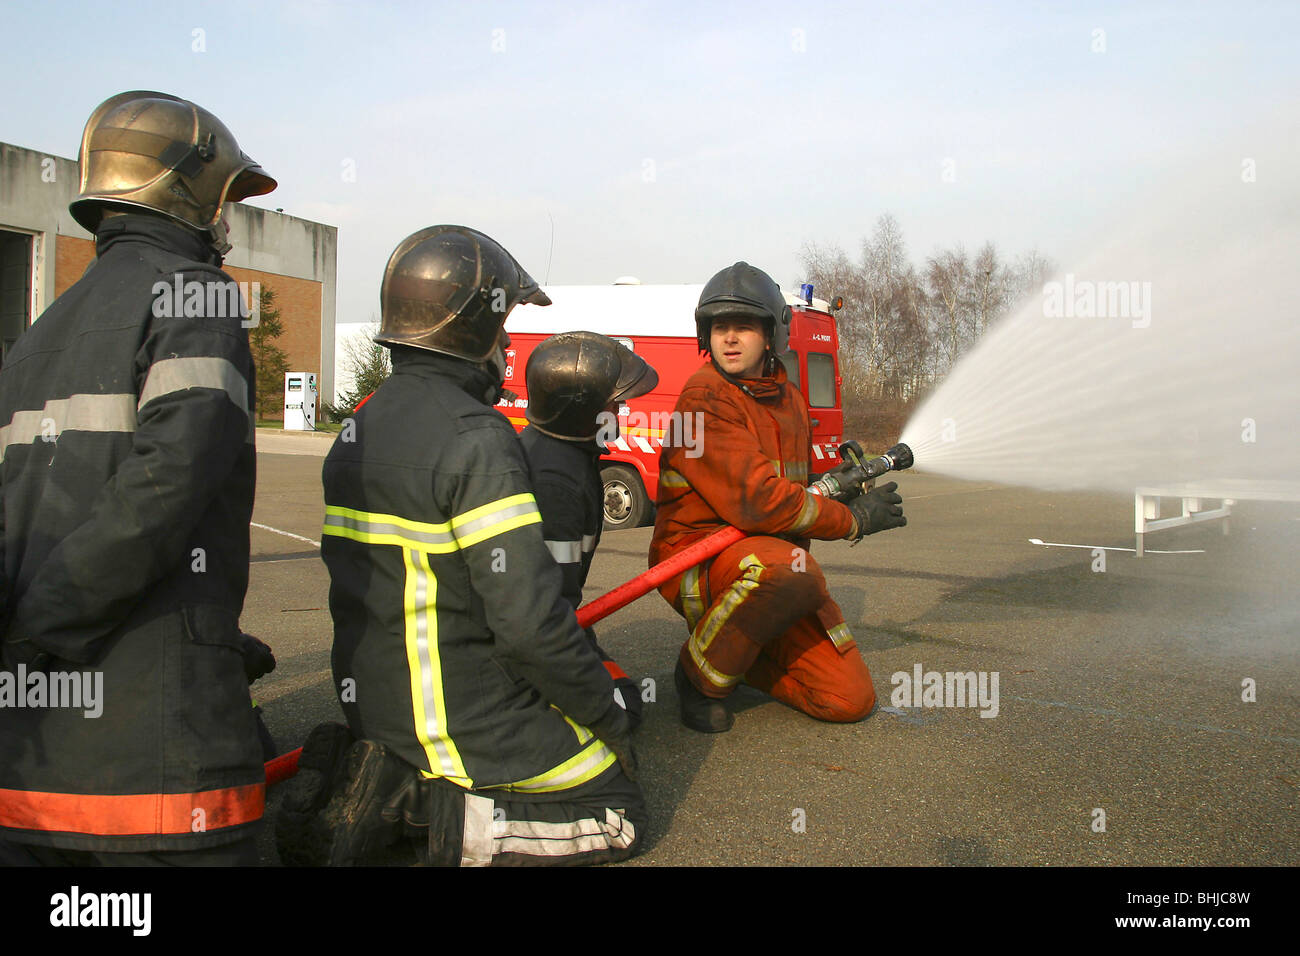 BASIC TRAINING FOR PROFESSIONAL FIREFIGHTERS, FIRE SIMULATOR, FLASH OVER IN A CONTAINER, YVELINES (78), FRANCE - Stock Image